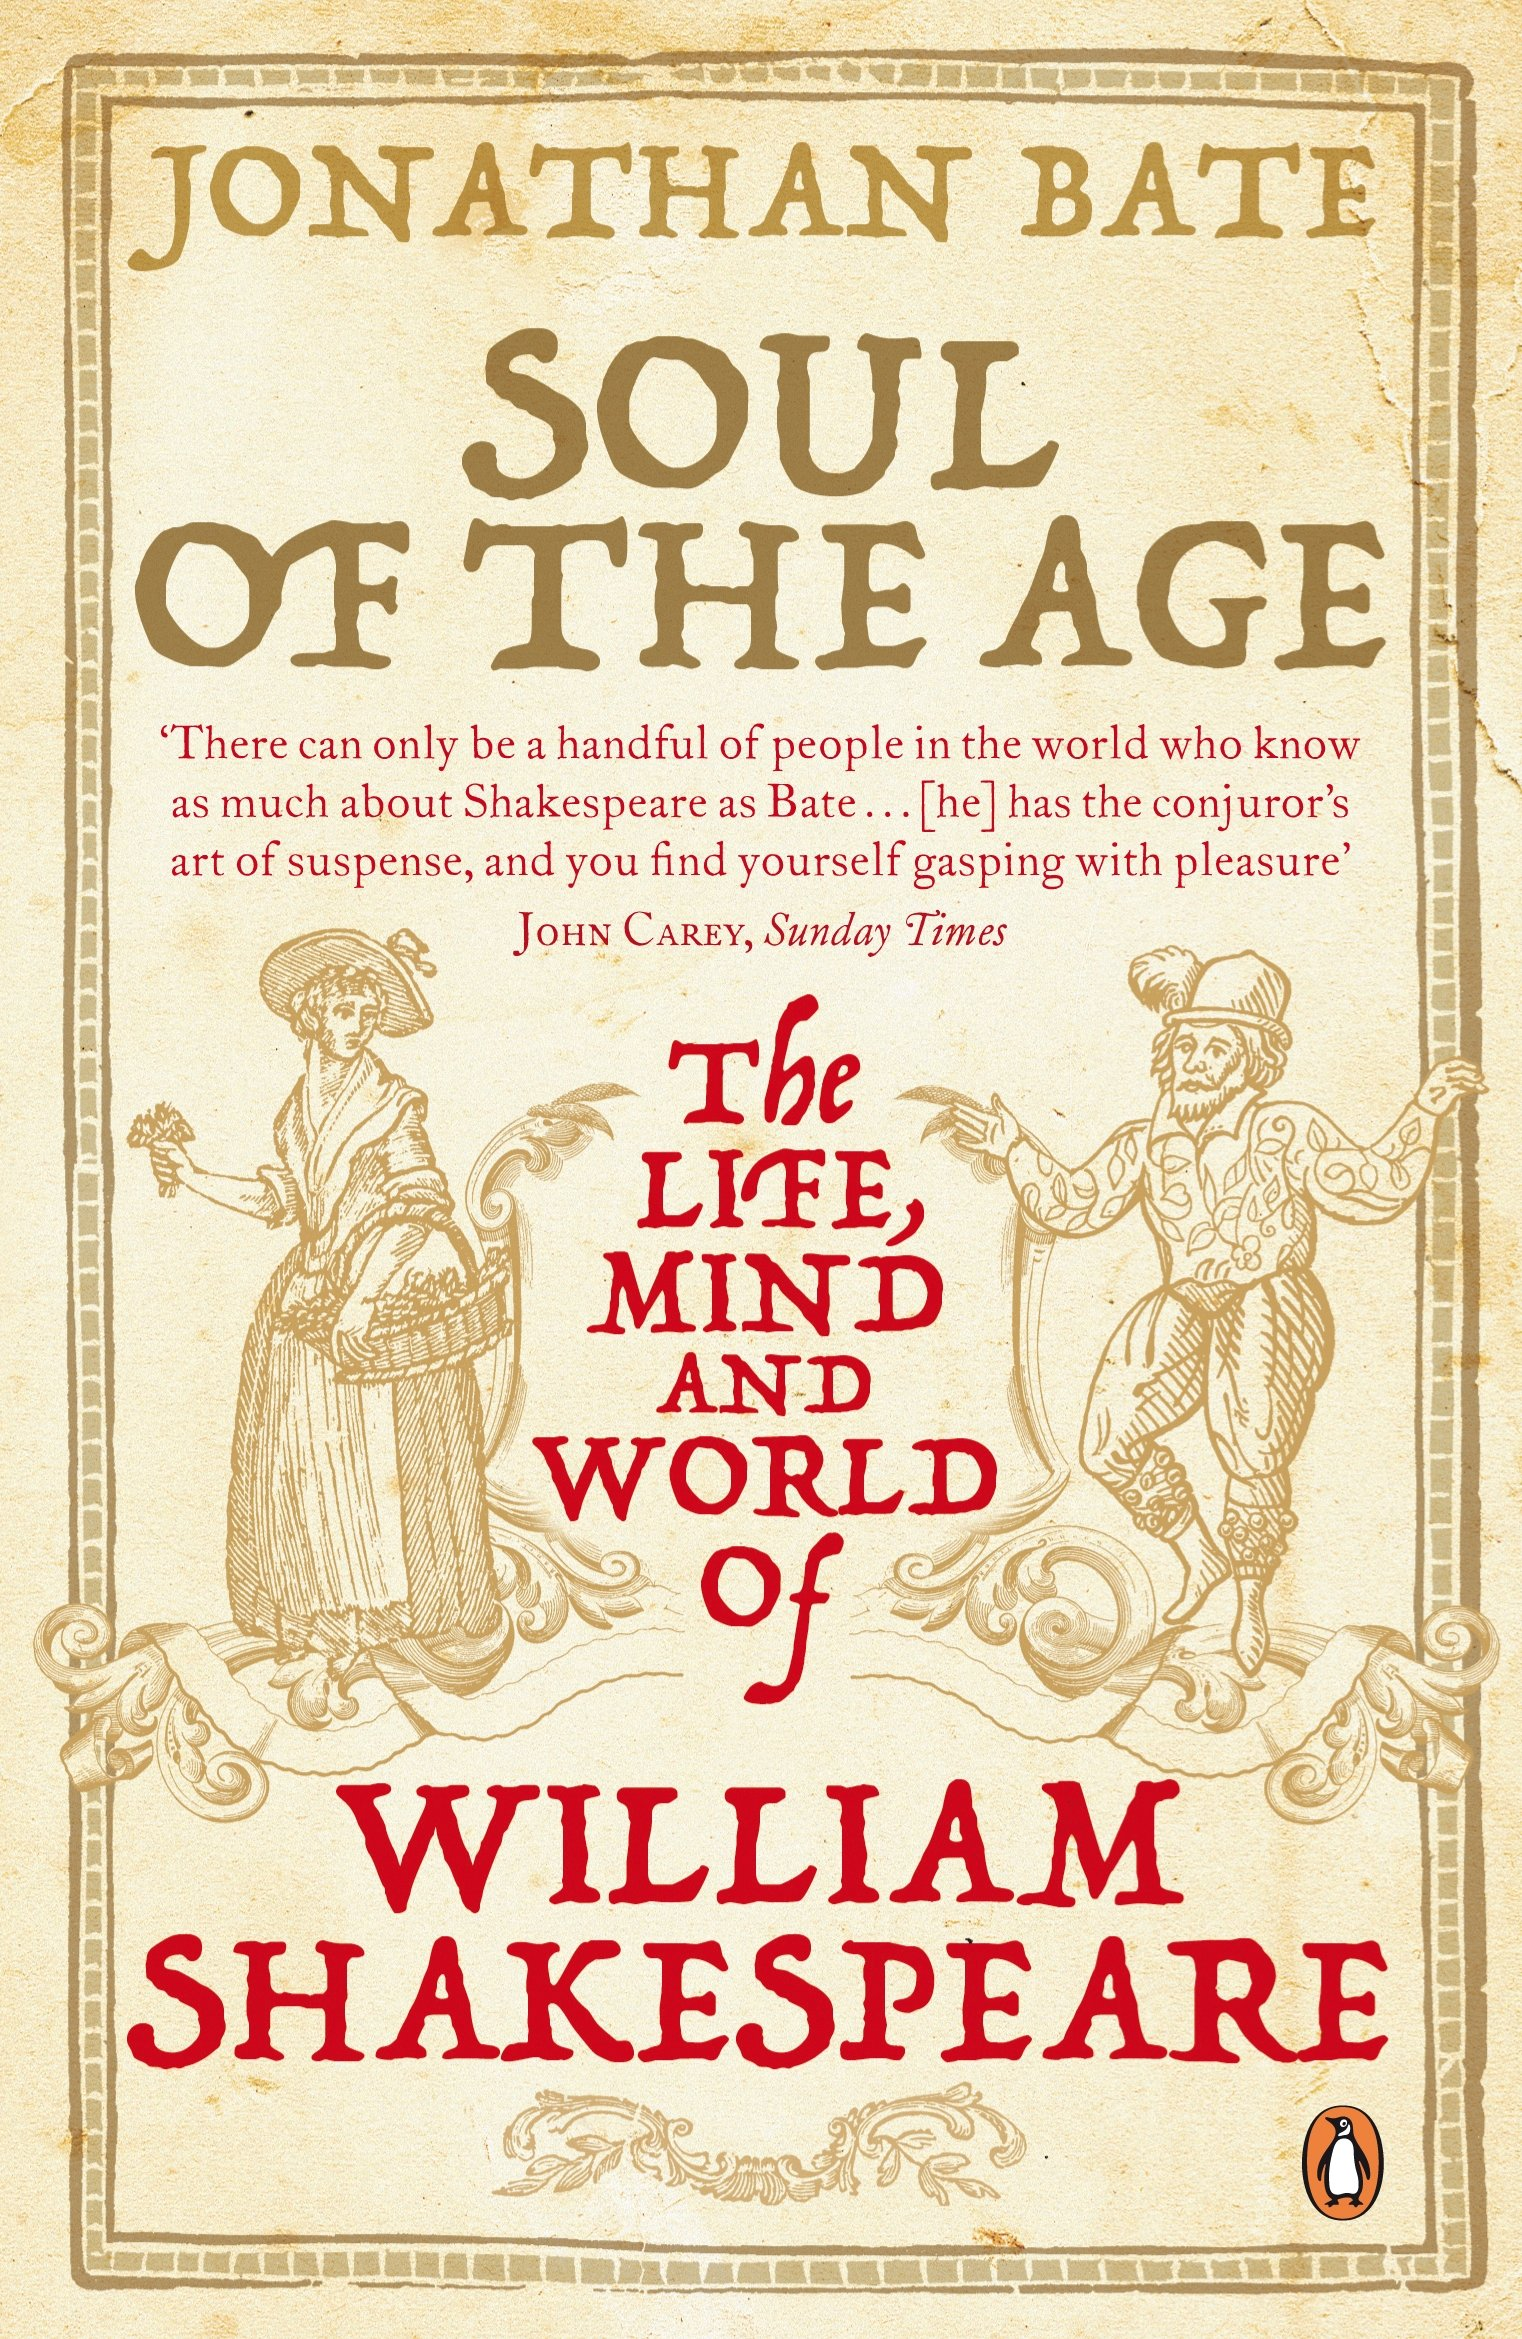 soul of the age the life mind and world of william shakespeare soul of the age the life mind and world of william shakespeare amazon co uk jonathan bate 9780141015866 books